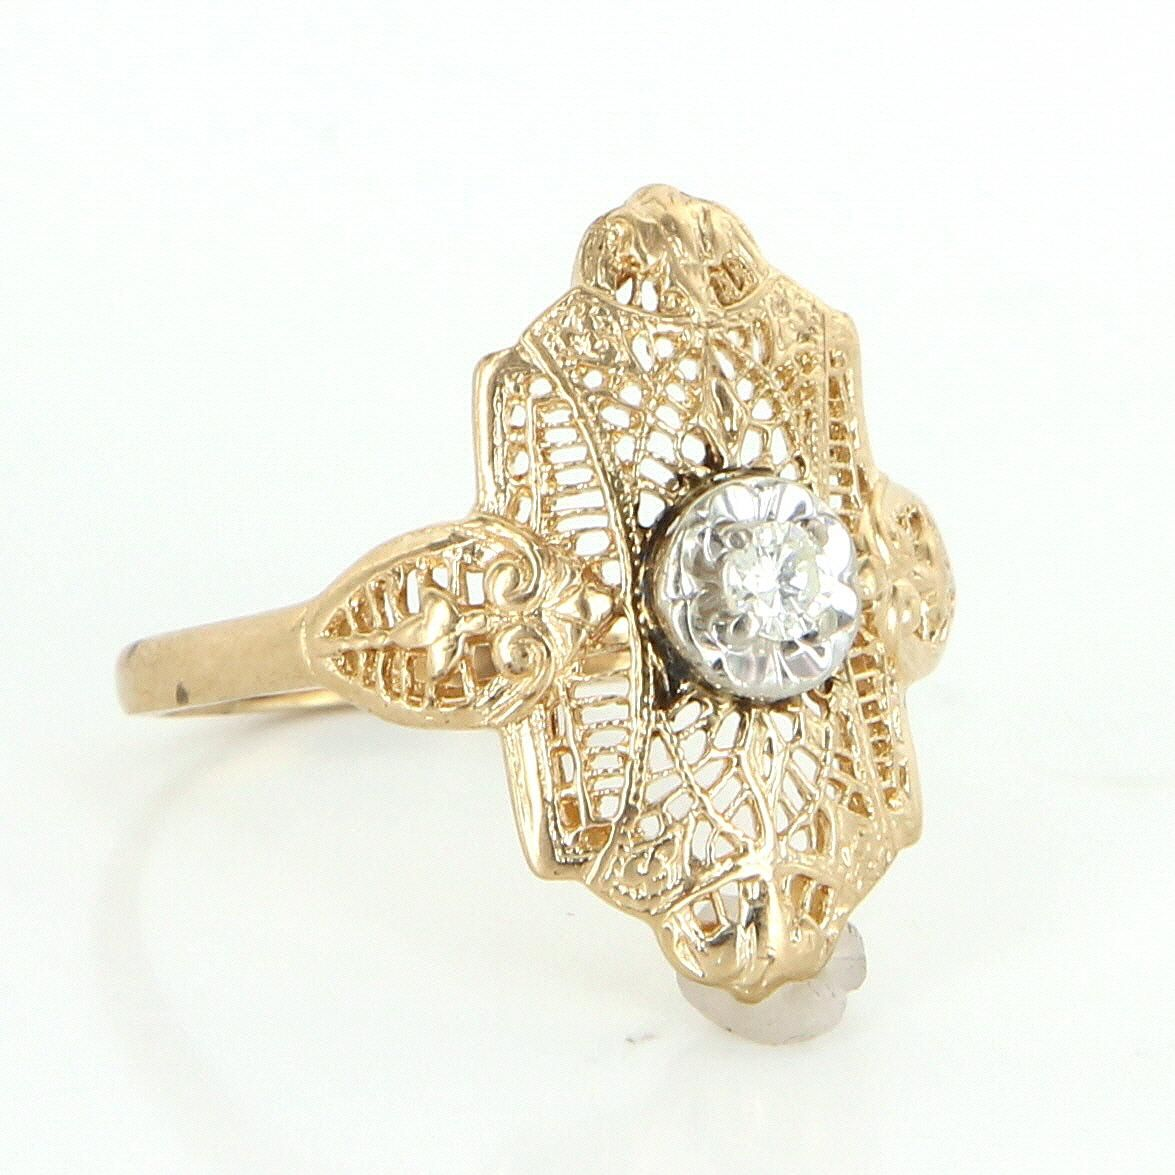 Diamond Filigree Ring Vintage 10 Karat Yellow Gold Estate Fine Jewelry Pre Owned Filigree Ring Vintage Rings Fine Jewelry